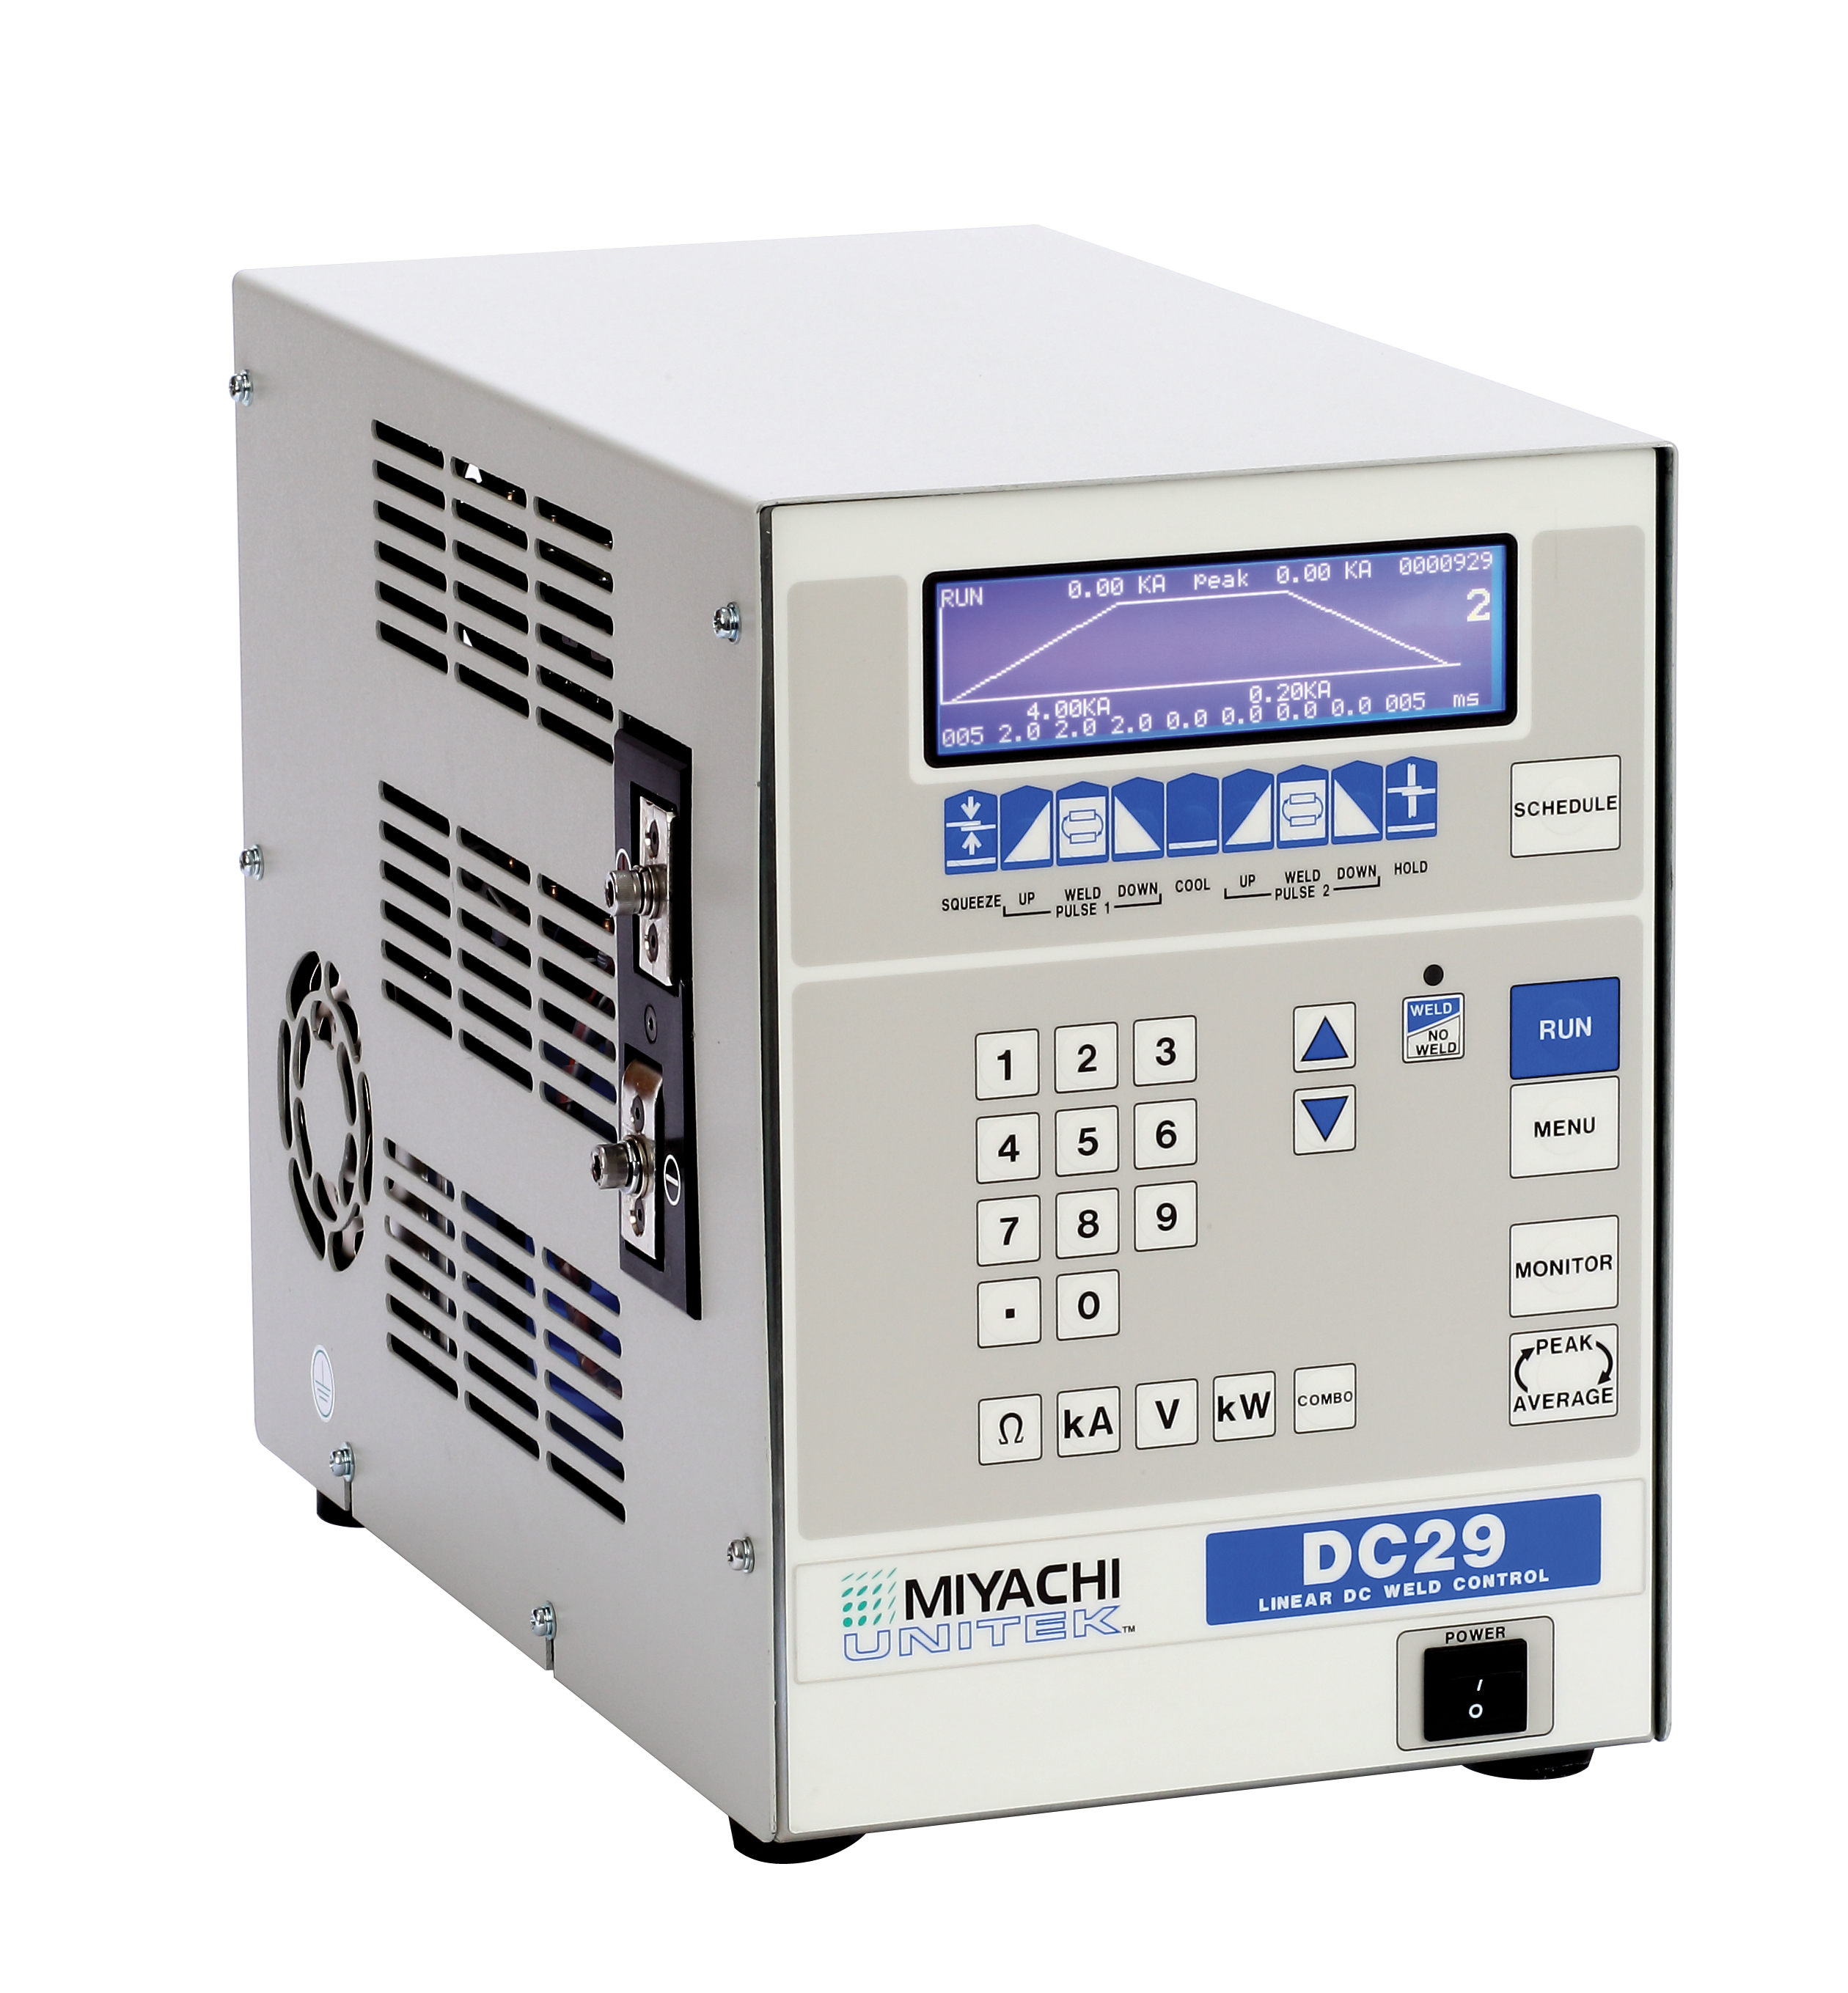 Miyachi Unitek Introduces DC29 Linear DC Micro Welder